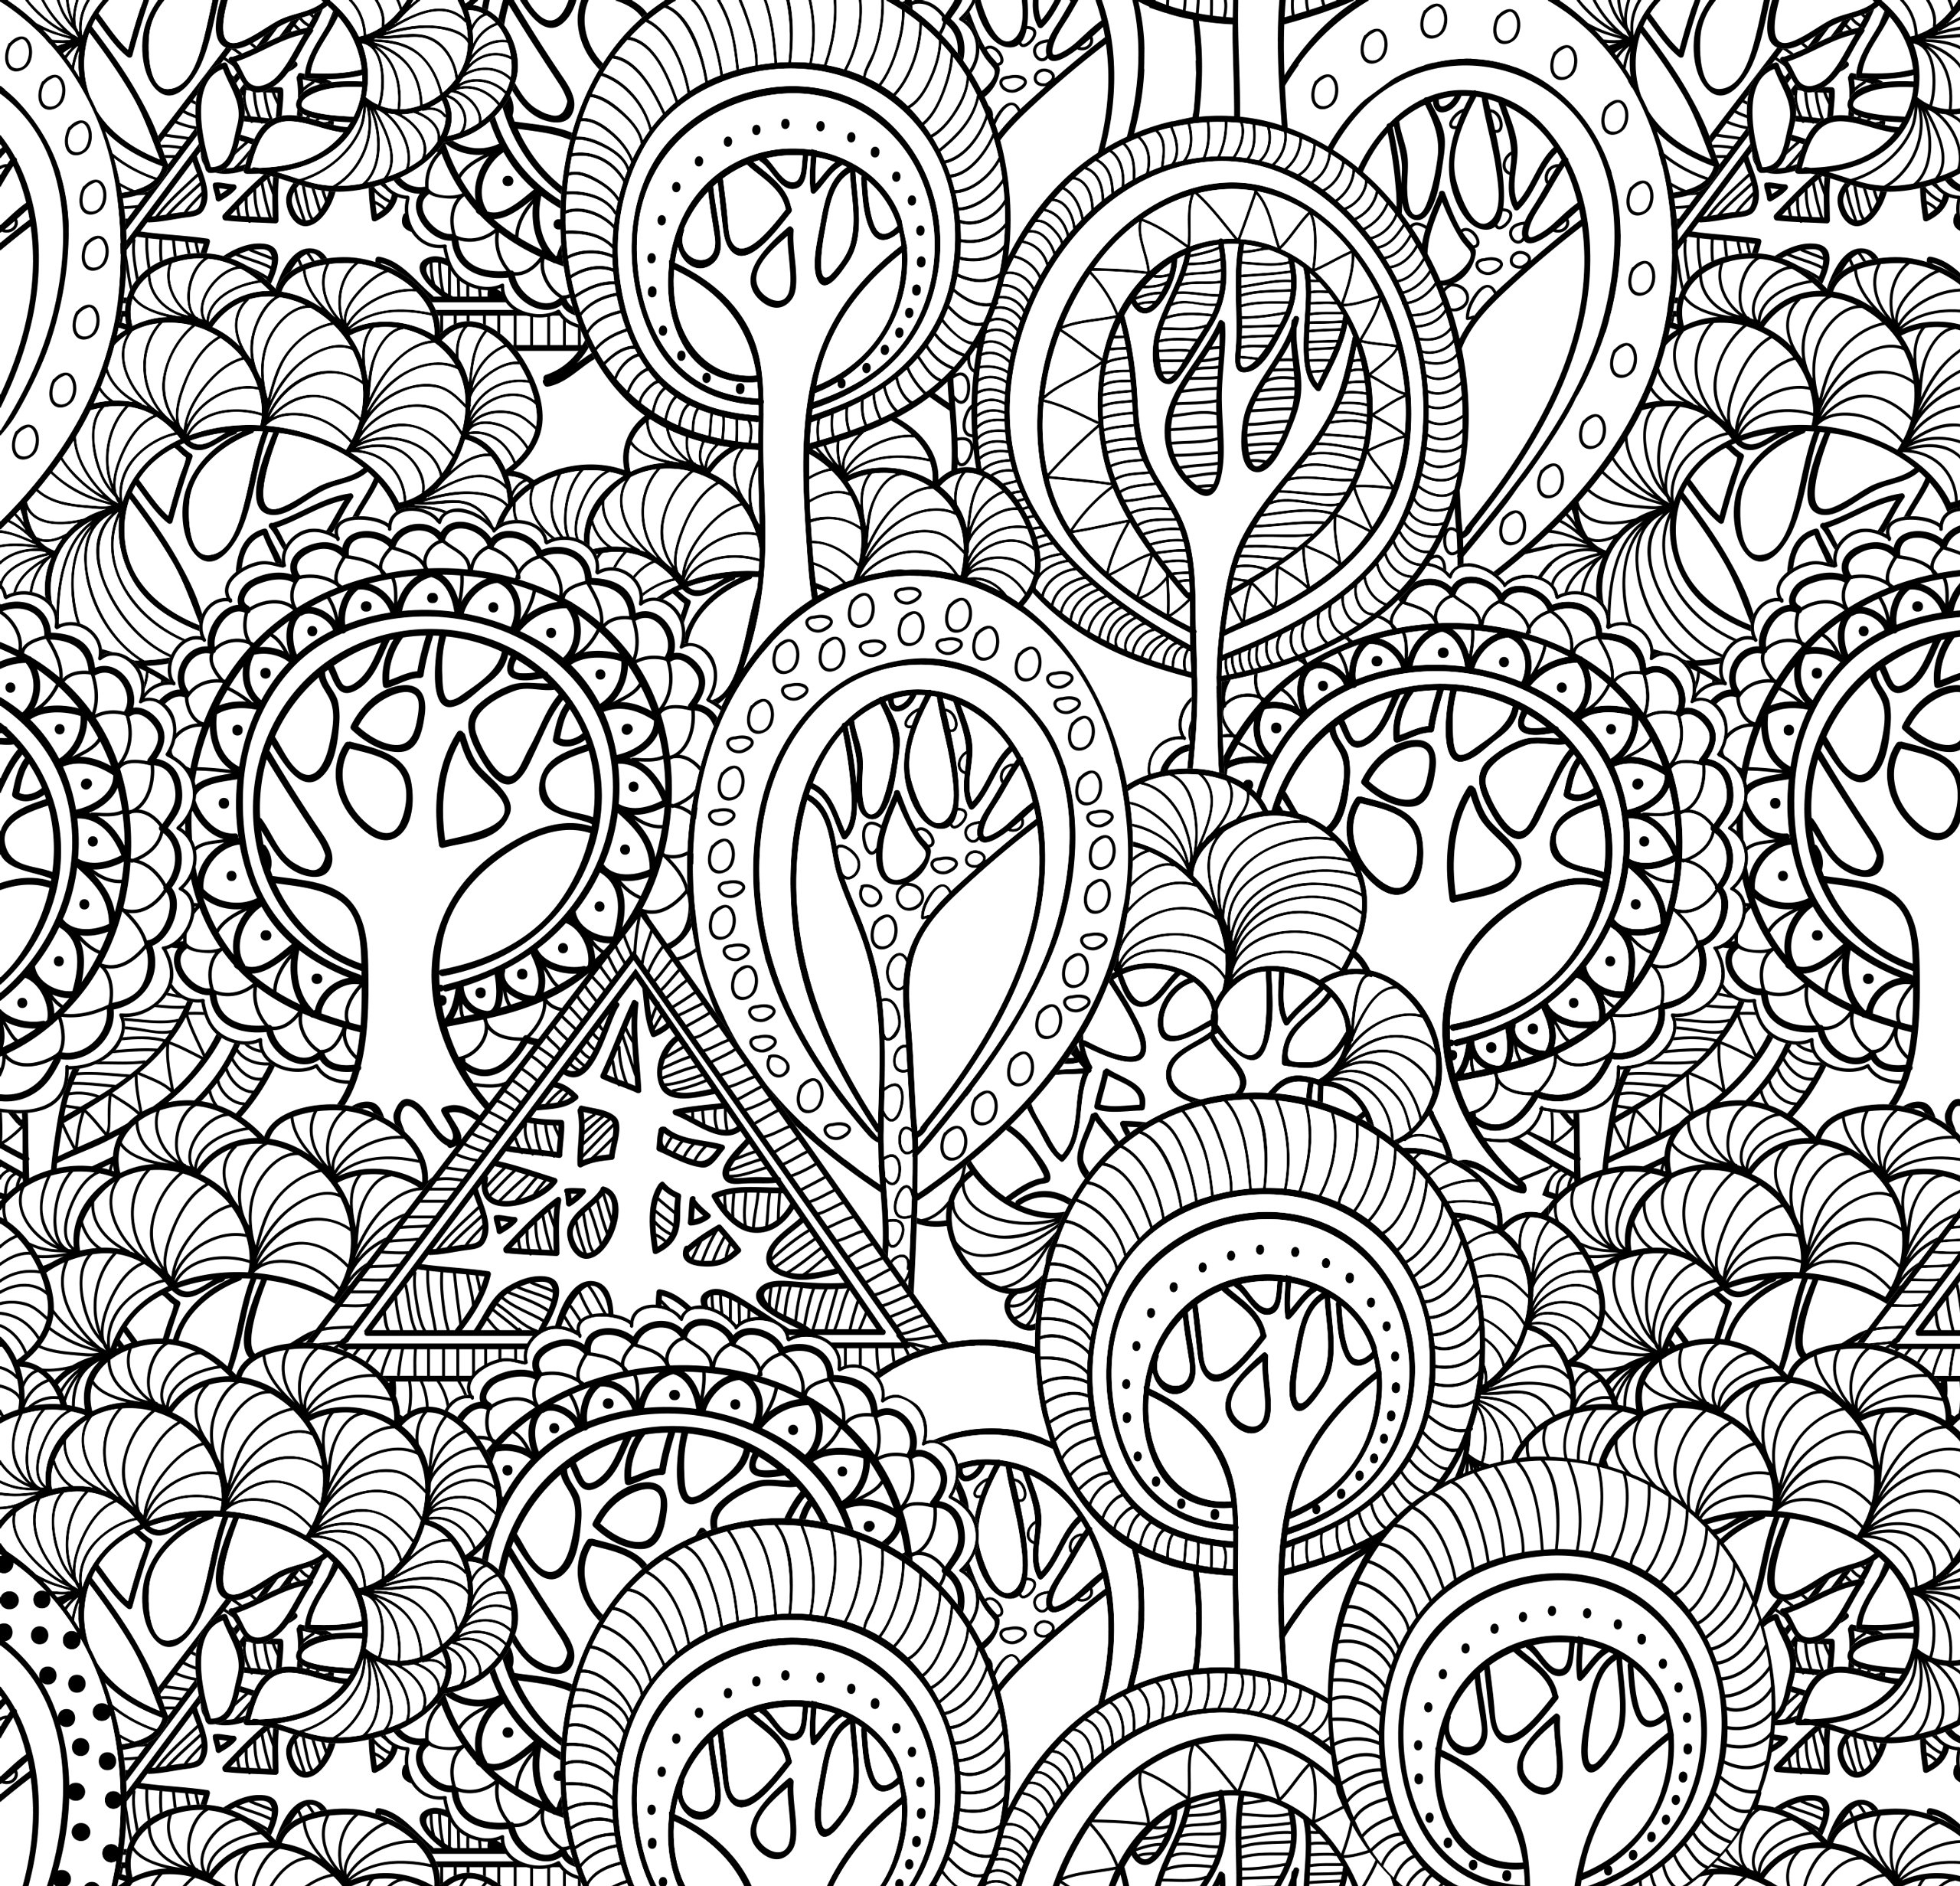 Felt Coloring Pages Collection | Free Coloring Sheets